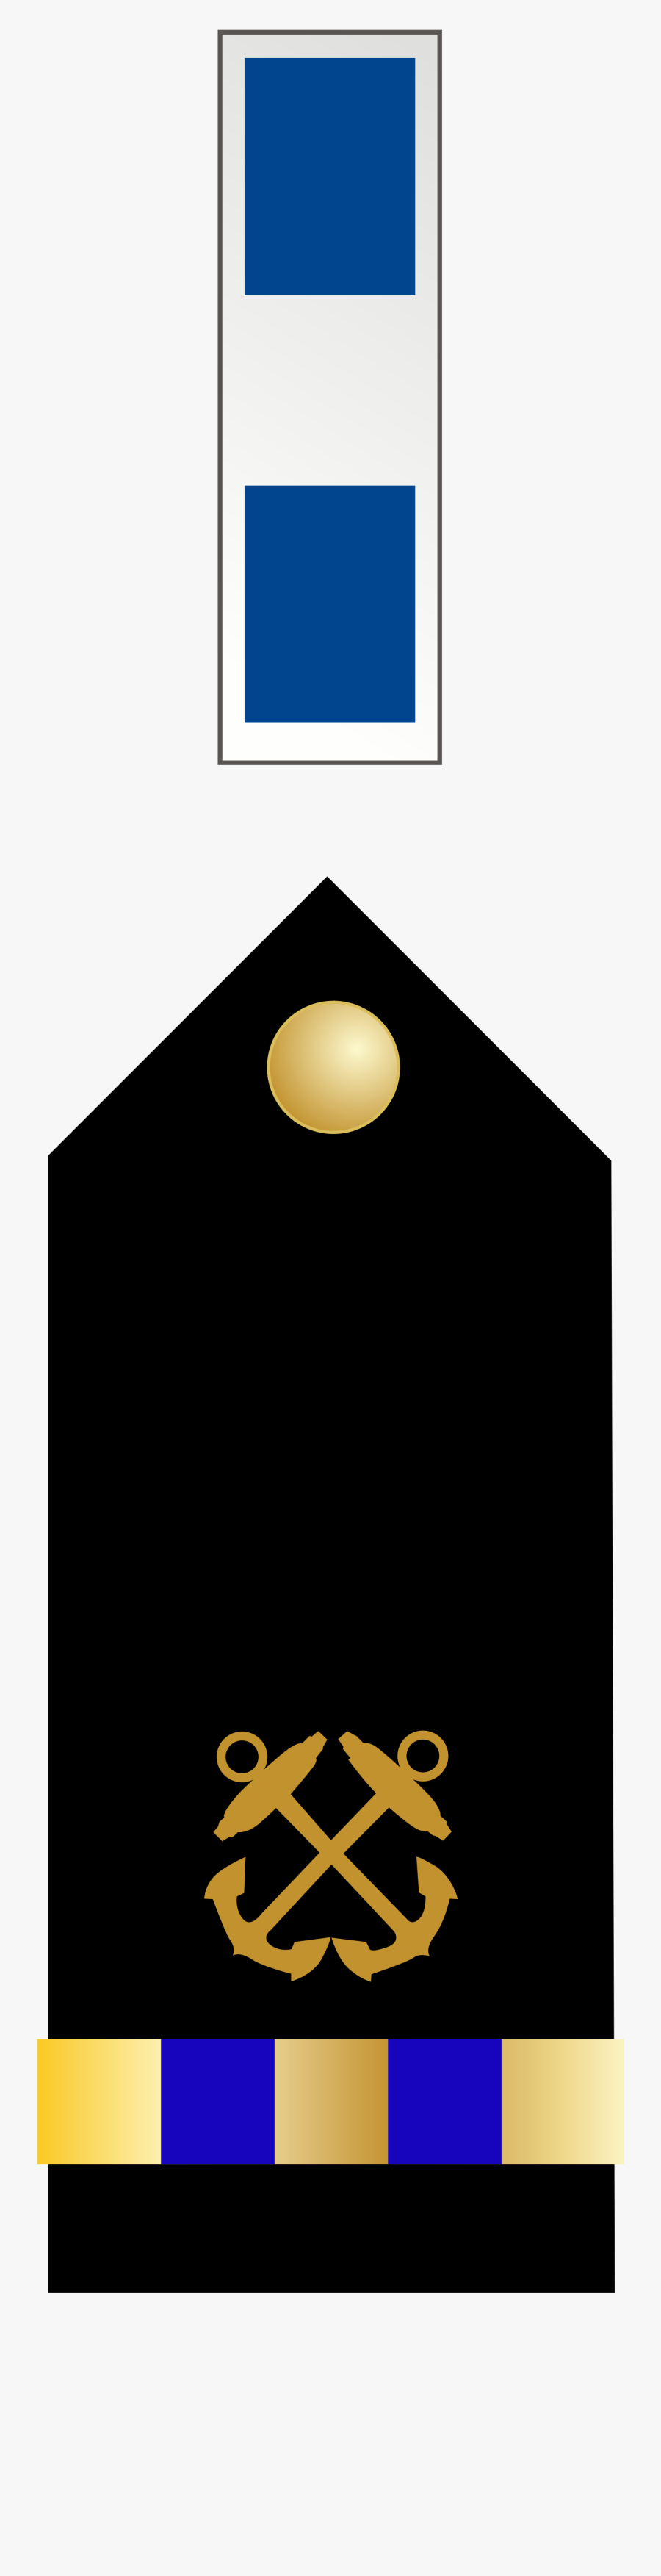 File Us Navy Cw - Chief Warrant Officer 3 Navy Rank, Transparent Clipart